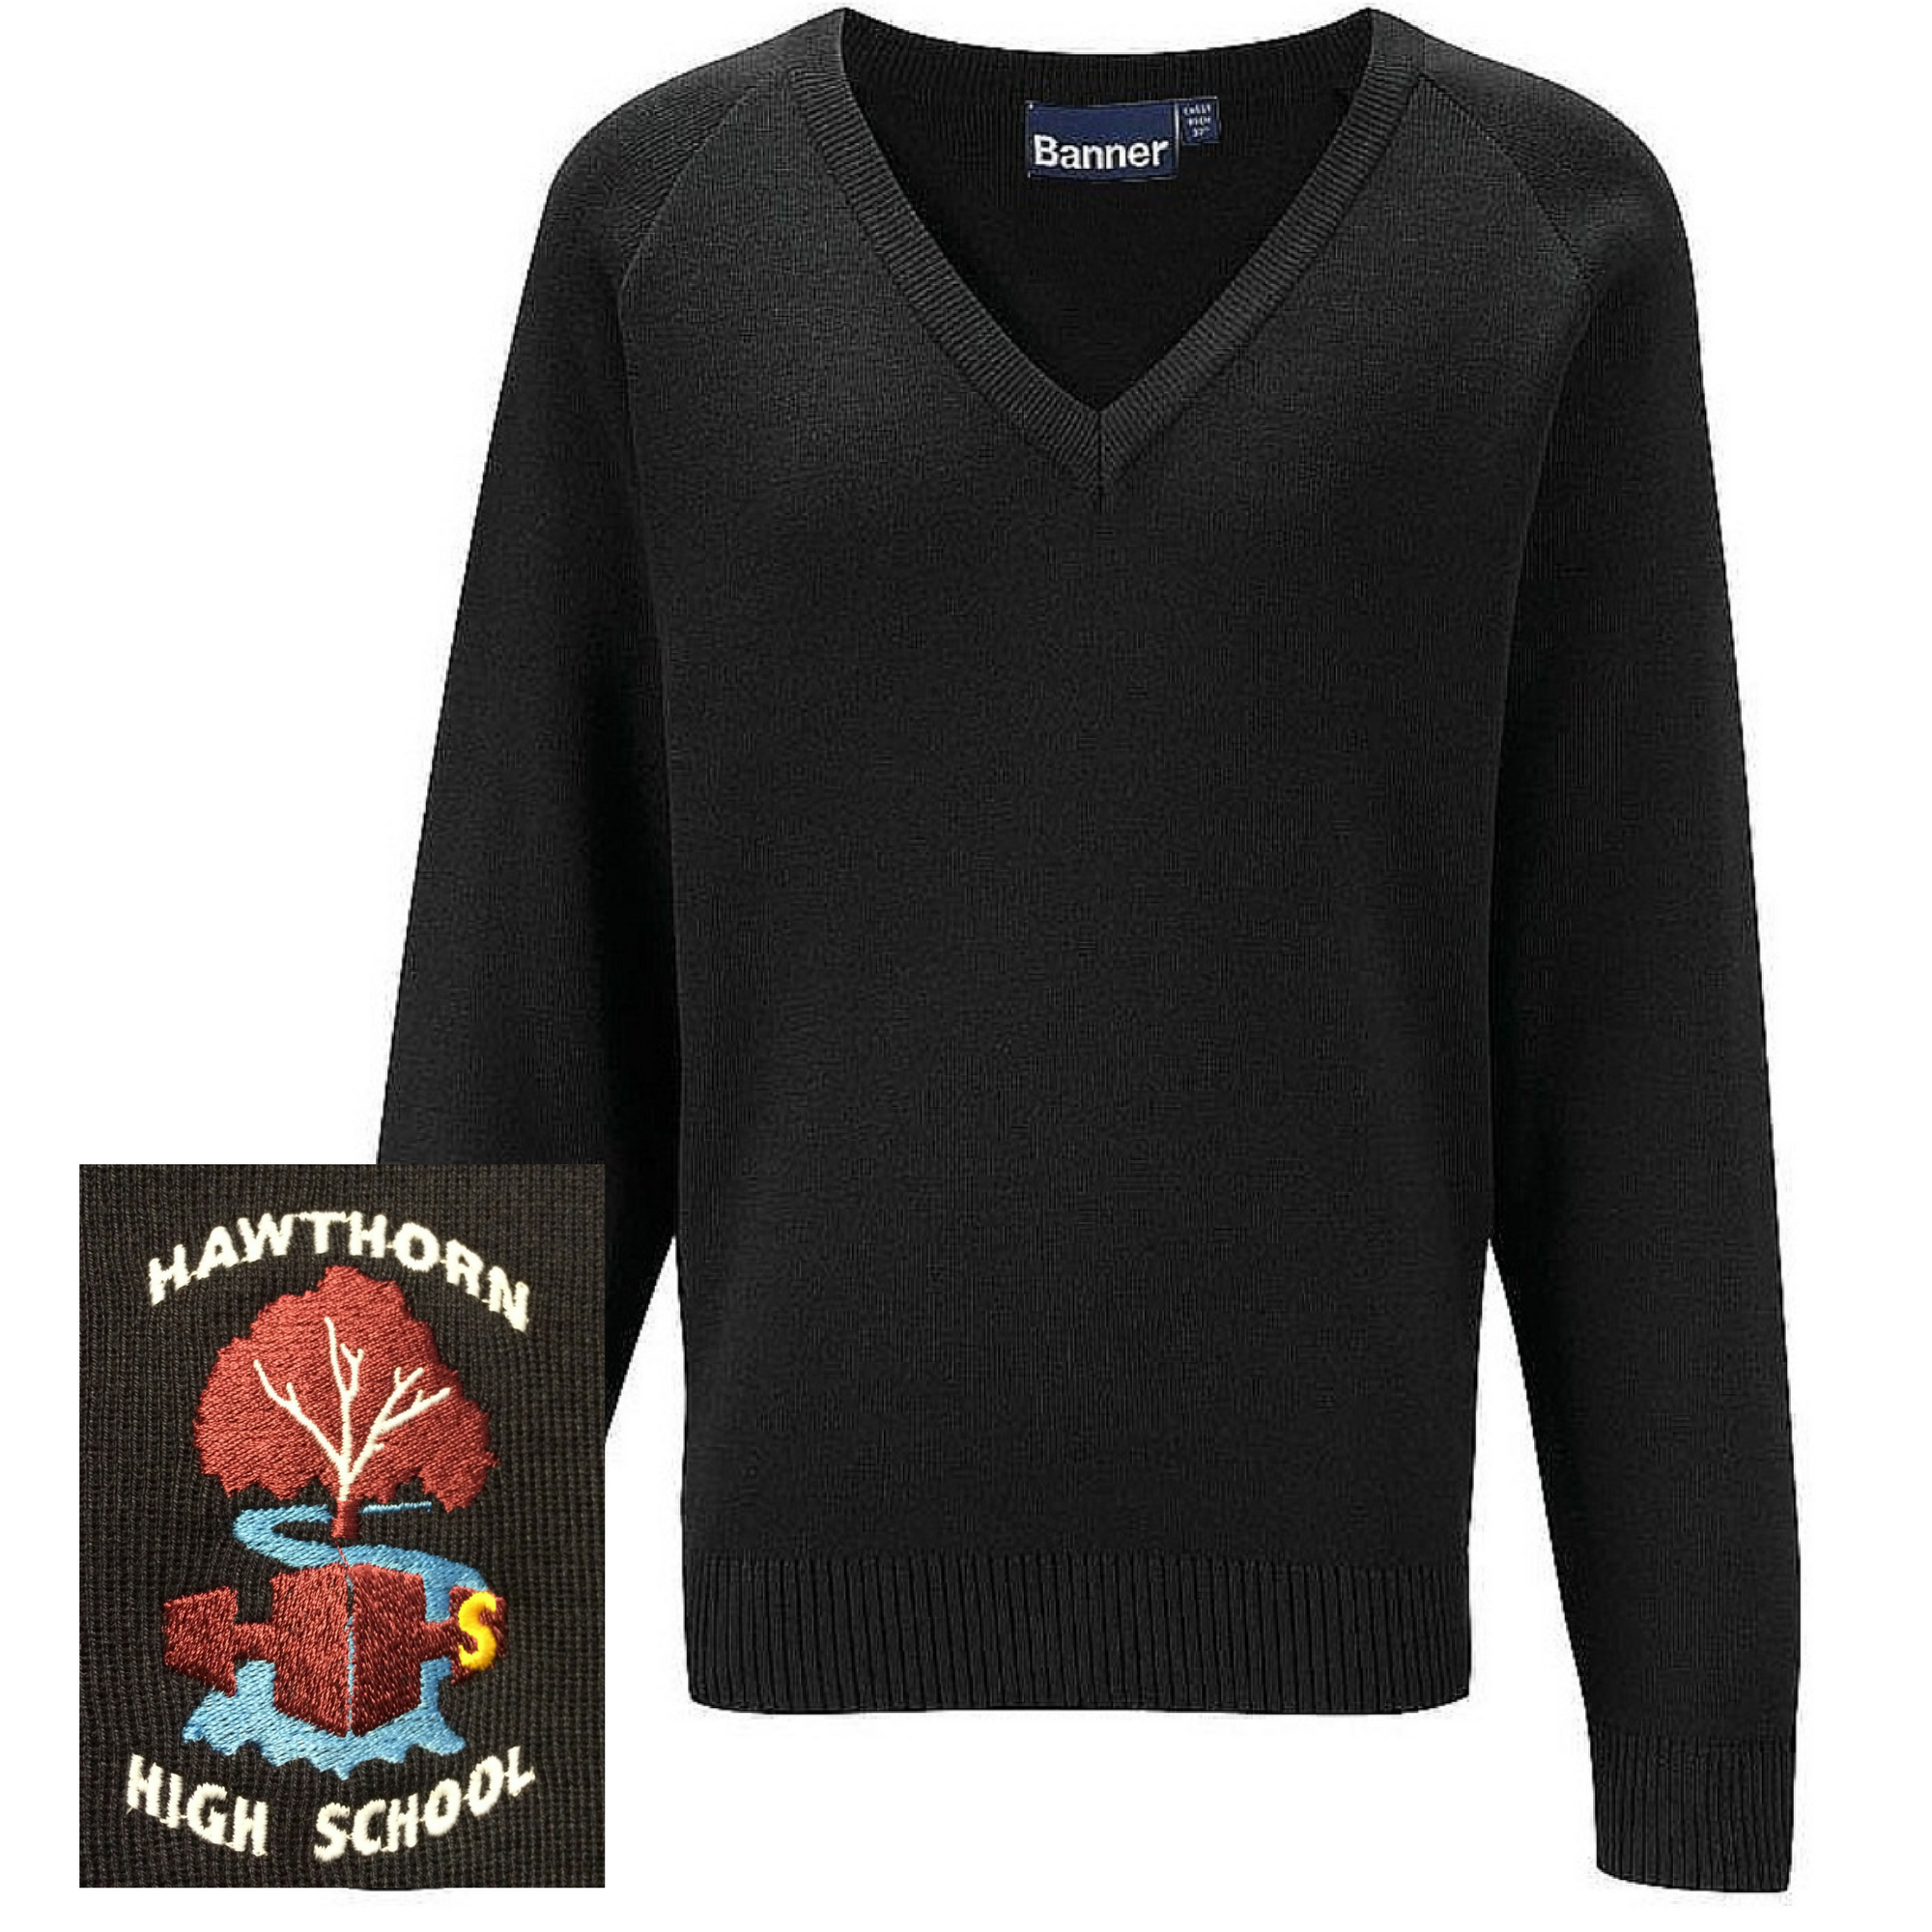 Hawthorn High School Black Unisex V-Neck Jumper (Yr 9-11)